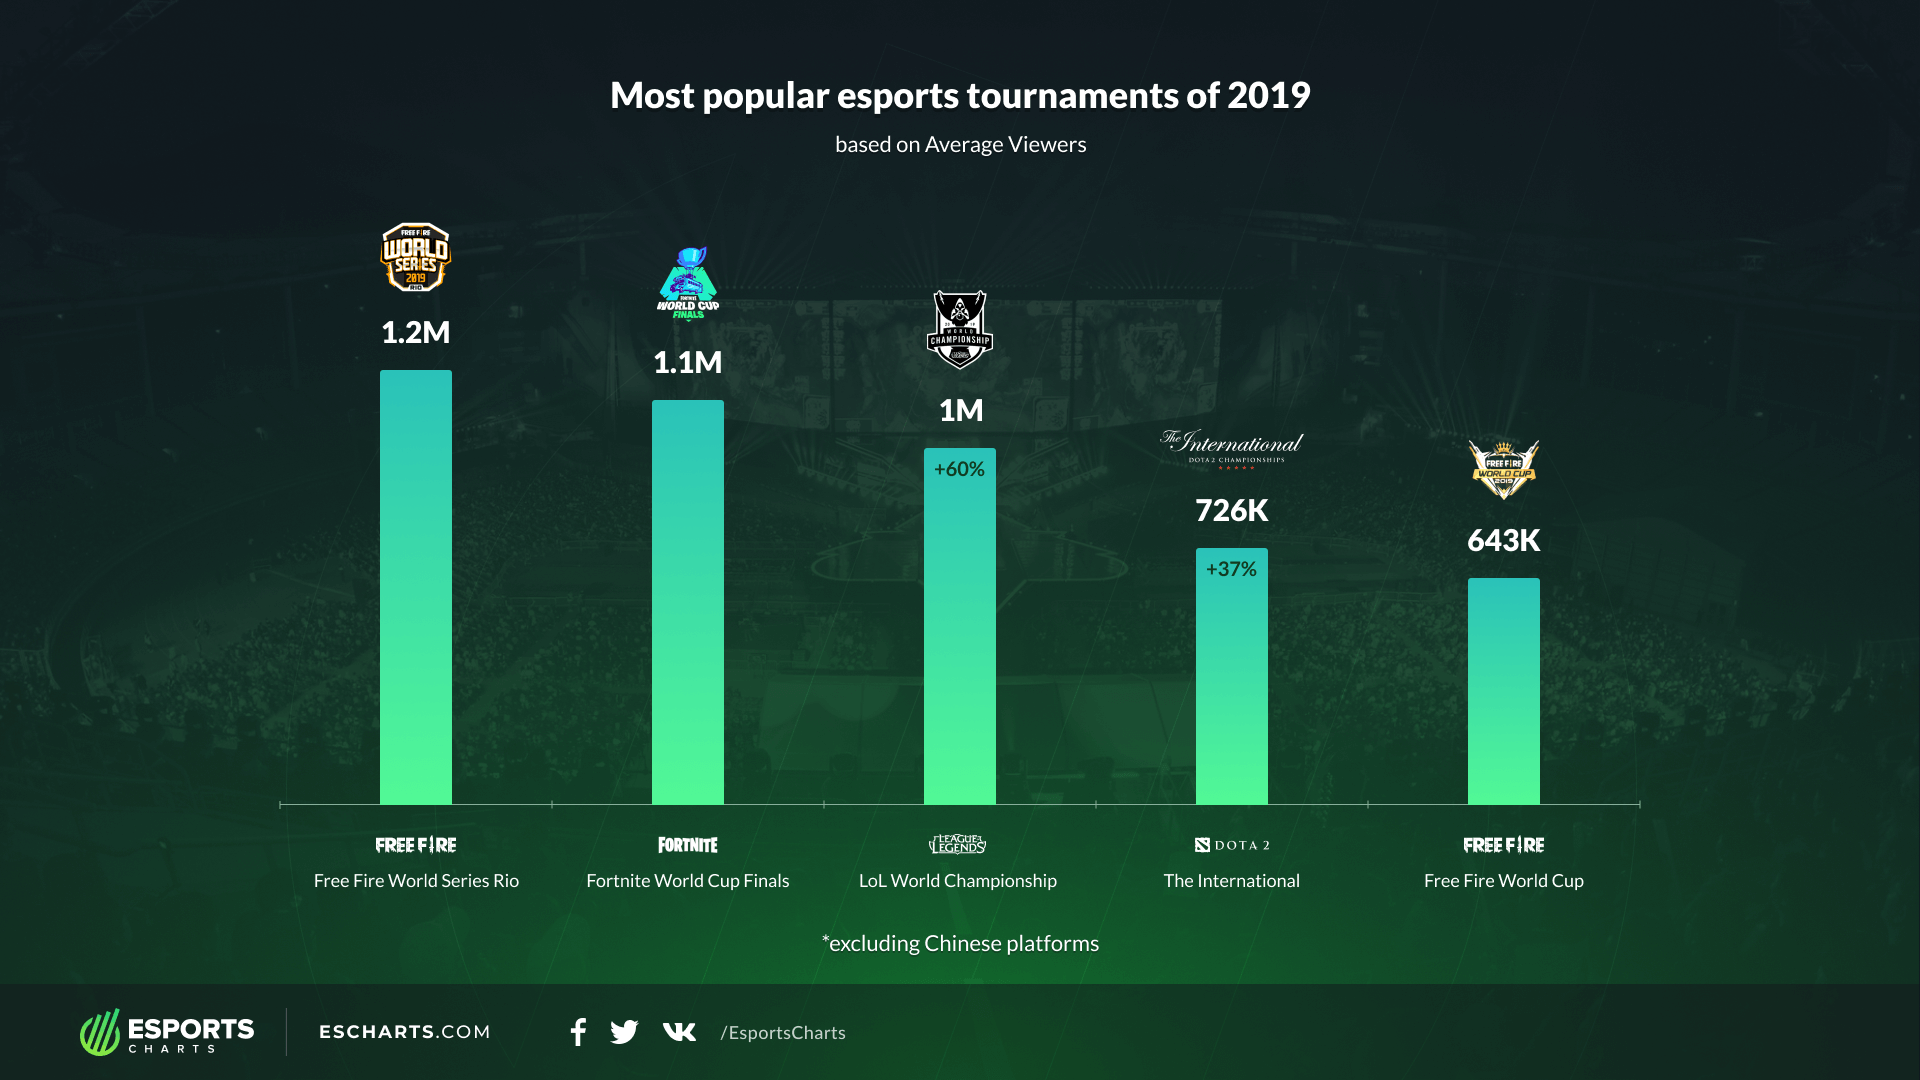 2019 Events by Average Viewership